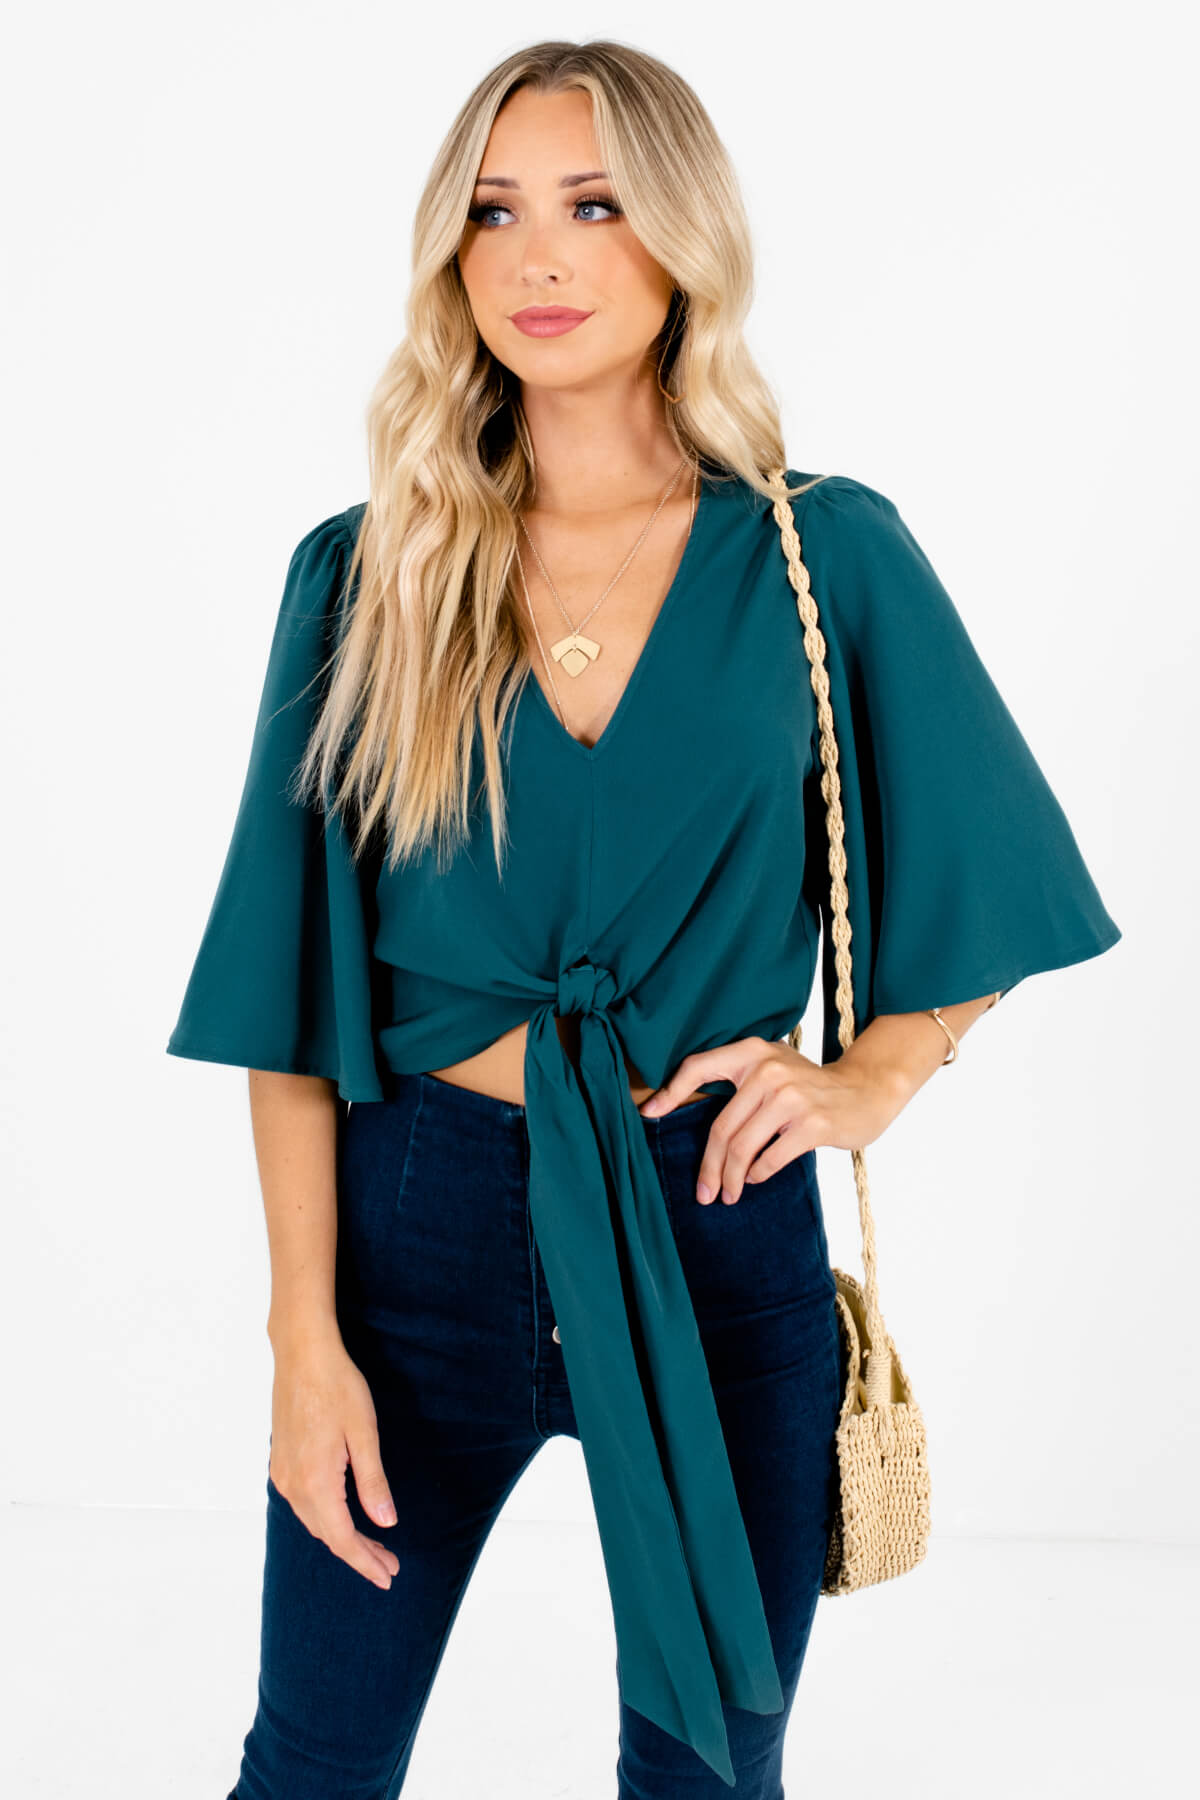 Emerald Green Tie Front Detail Boutique Tops for Women